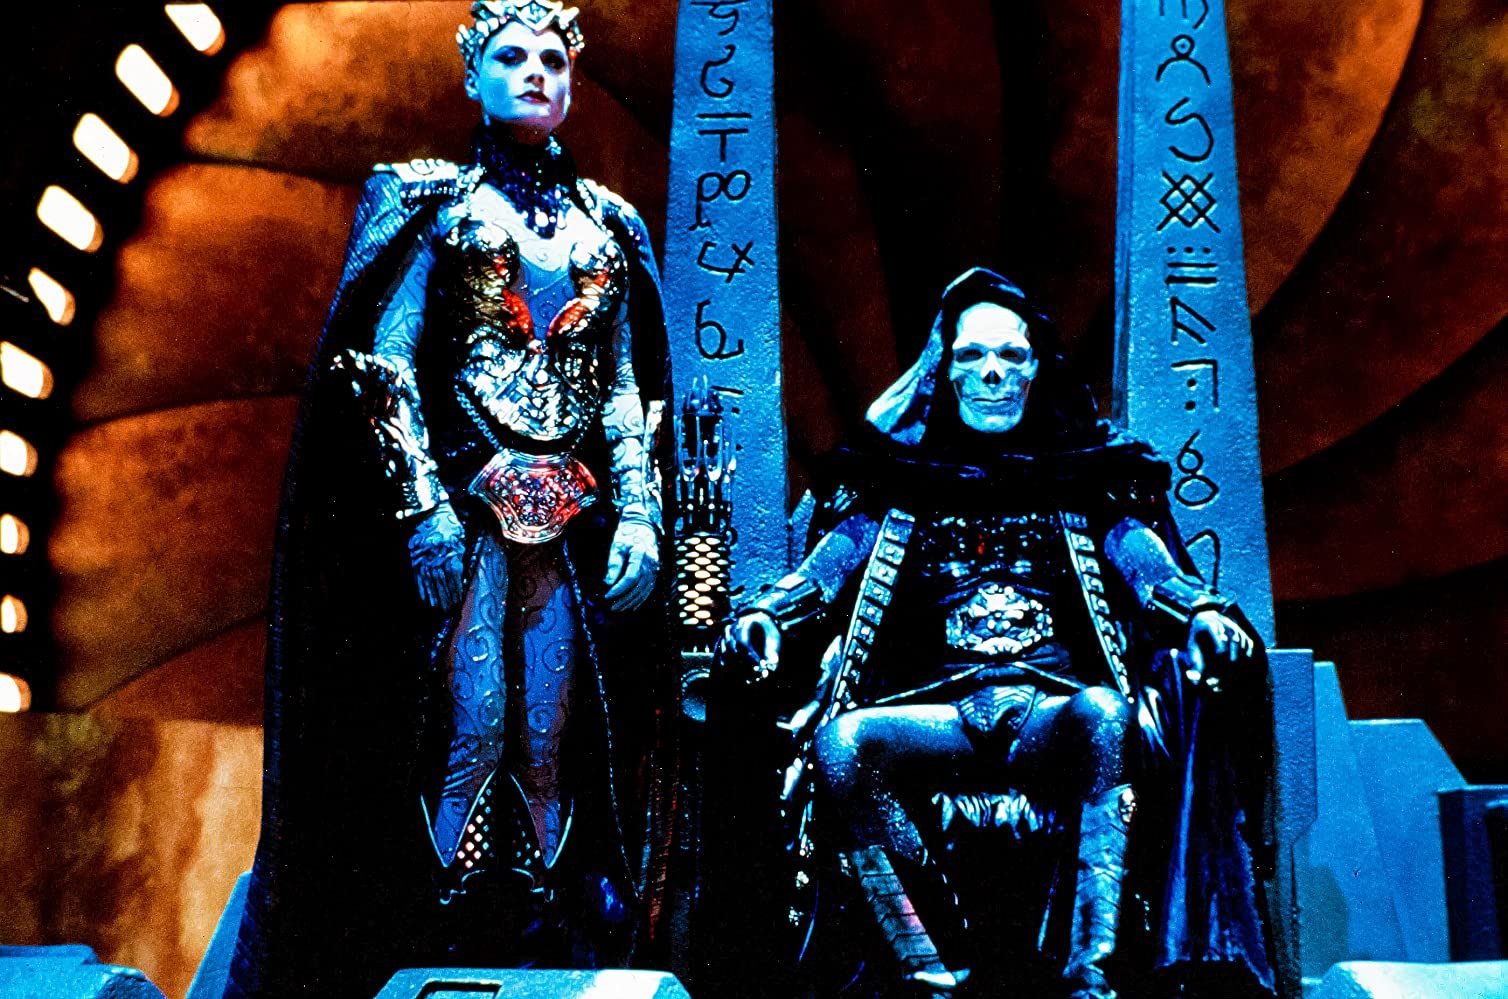 Meg Foster and Frank Langella in Masters of the Universe (1987)